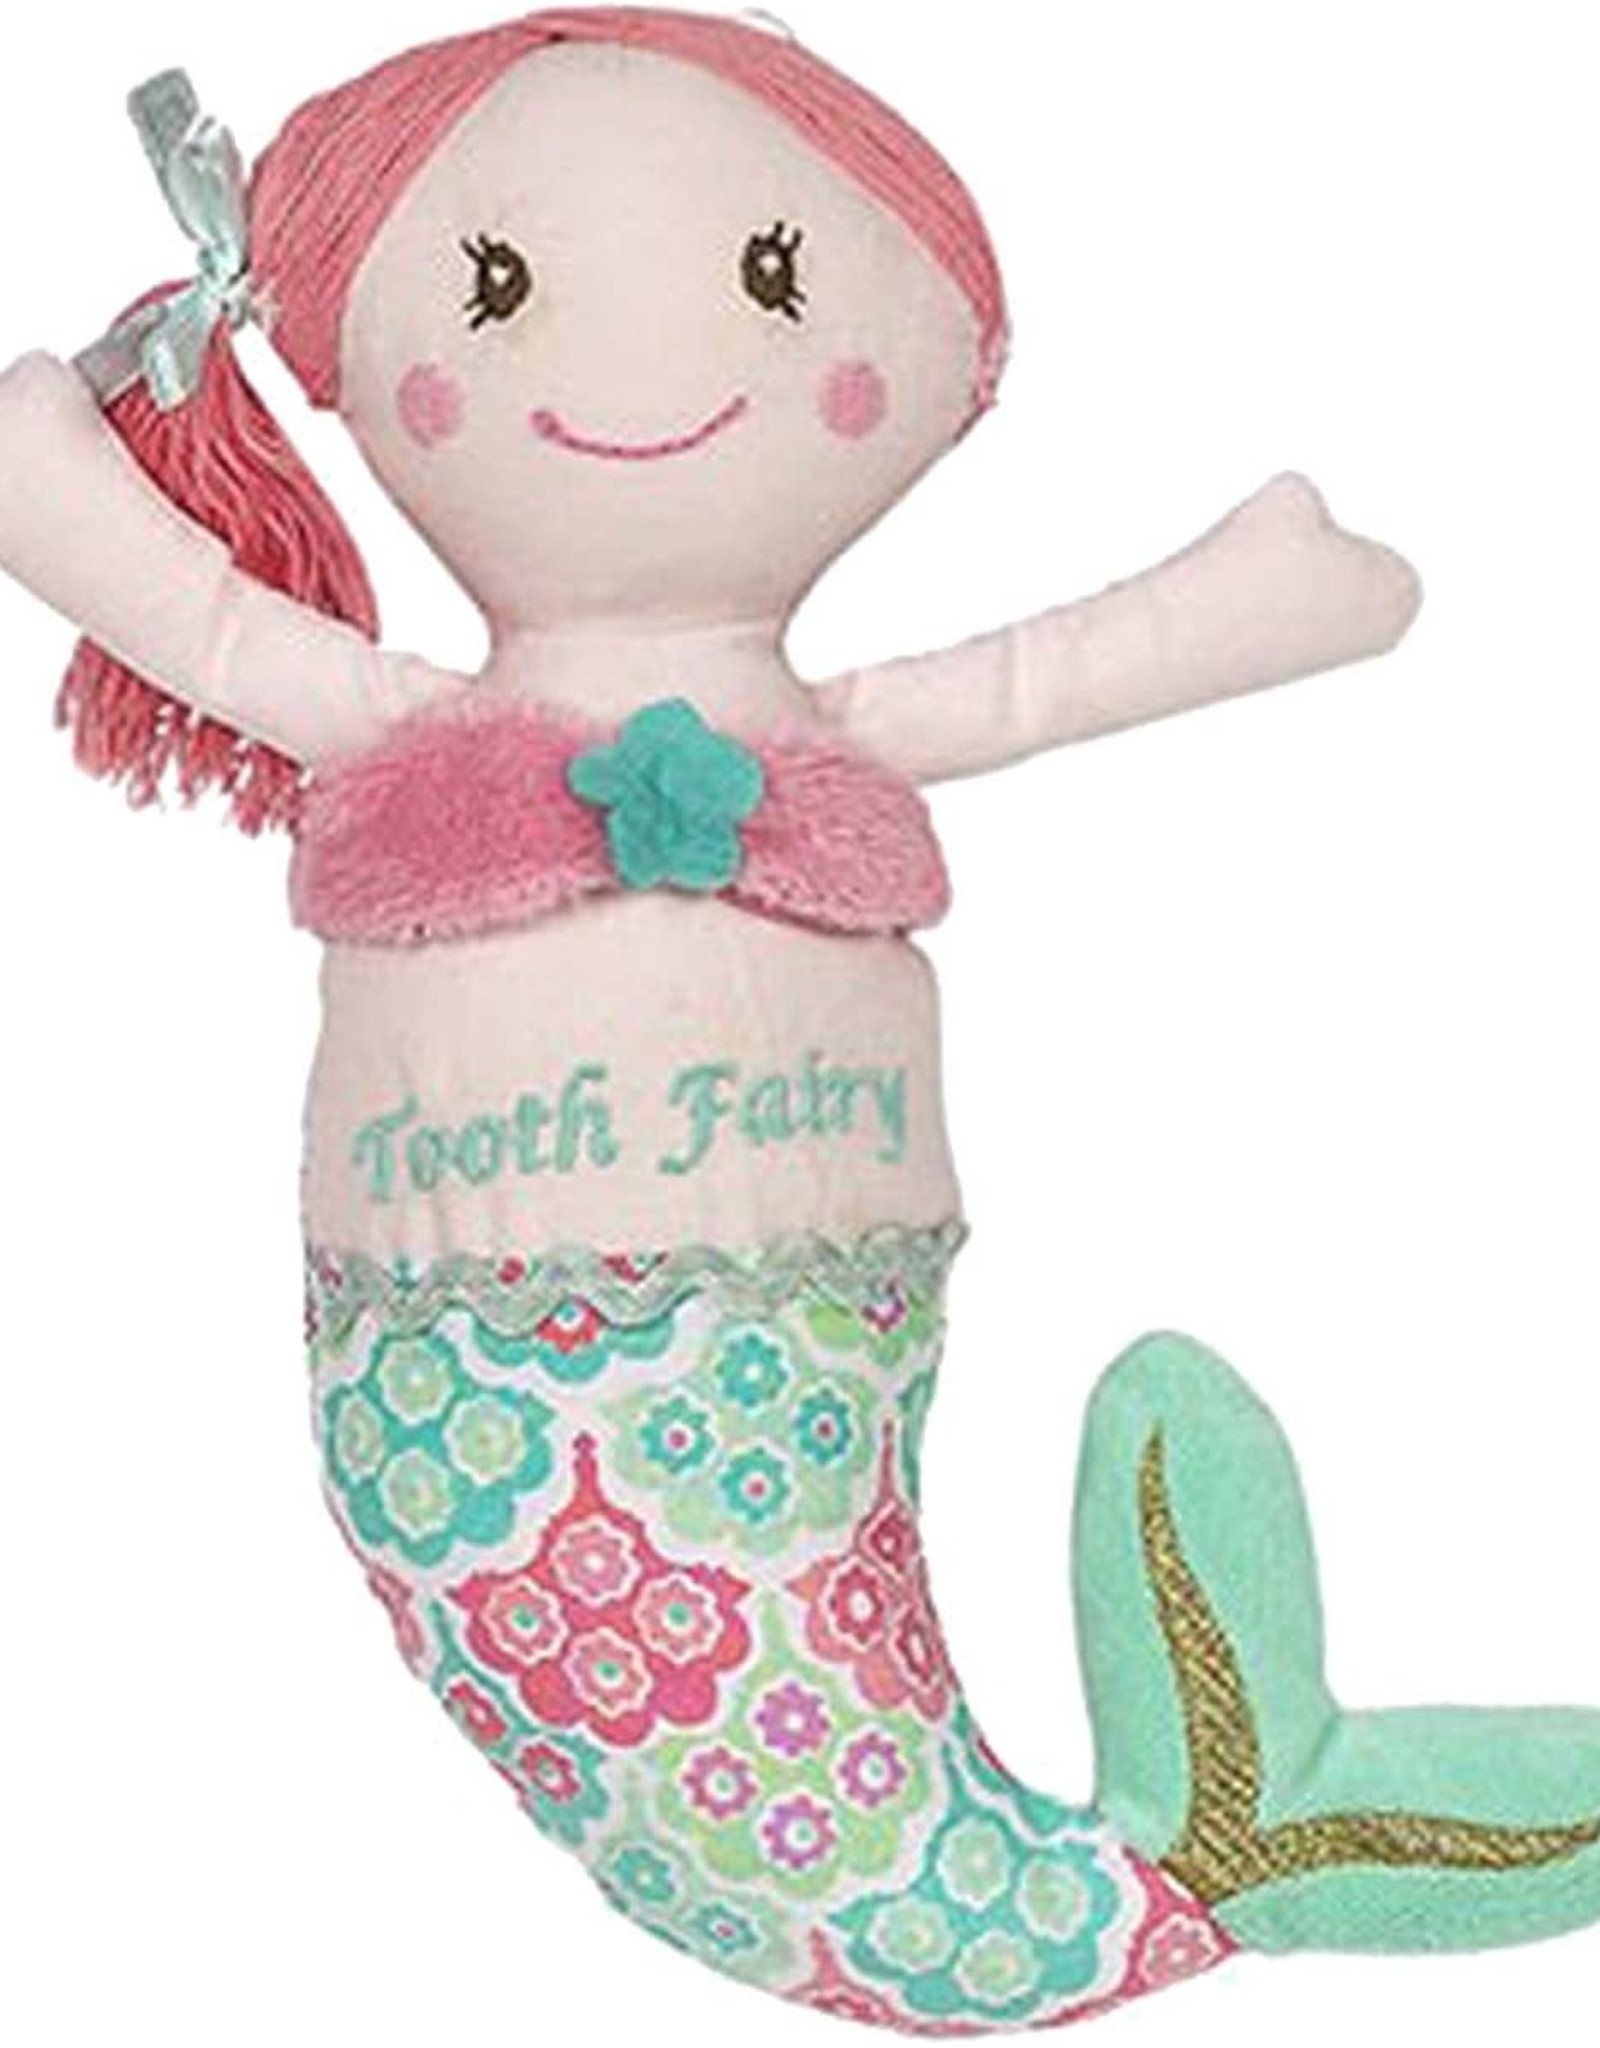 Maison Chic Tooth Fairy Mermaid